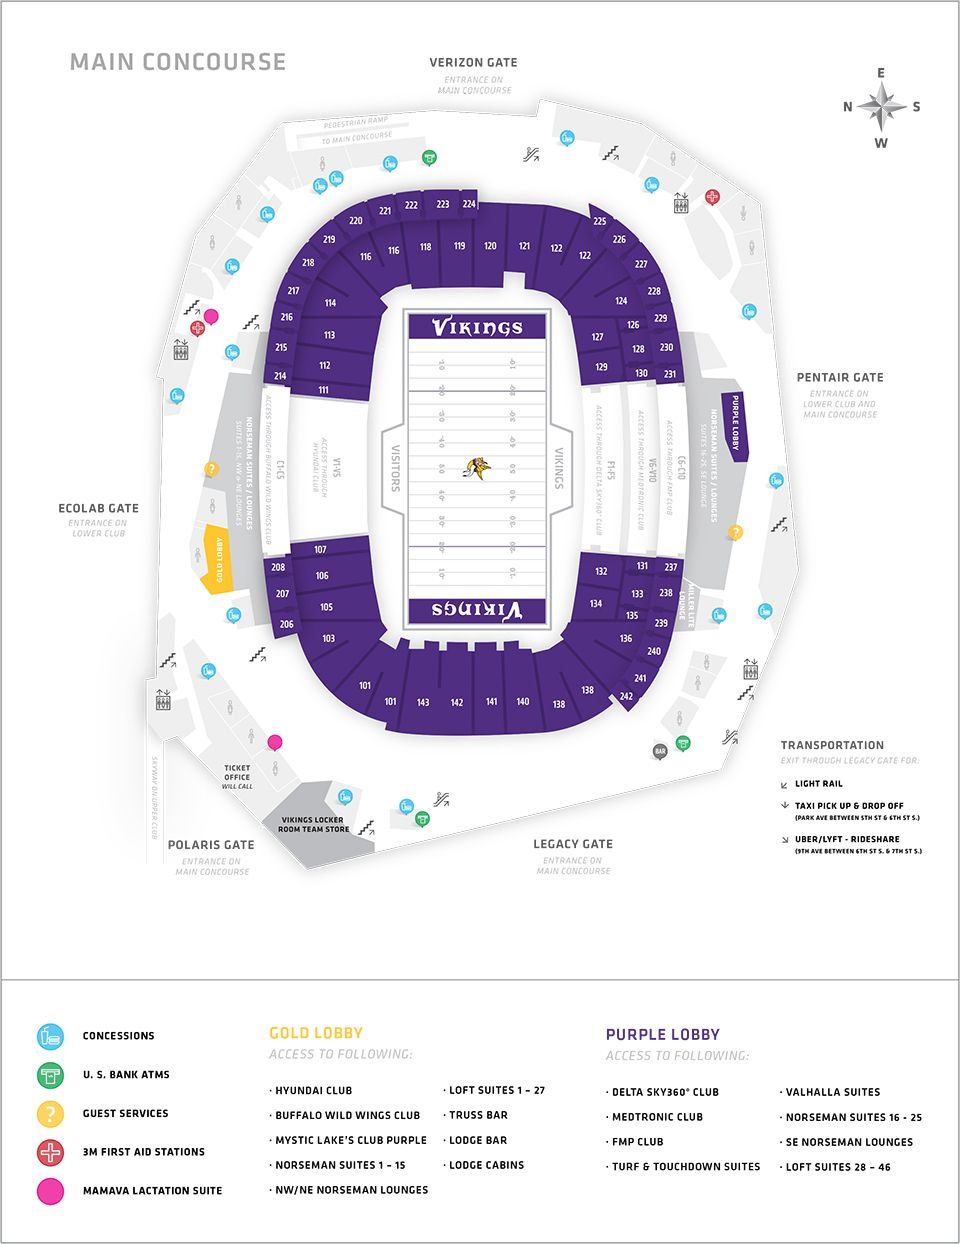 Minnesota Vikings US Bank Stadium Map Seating Chart STUFF - Parking map us bank stadium